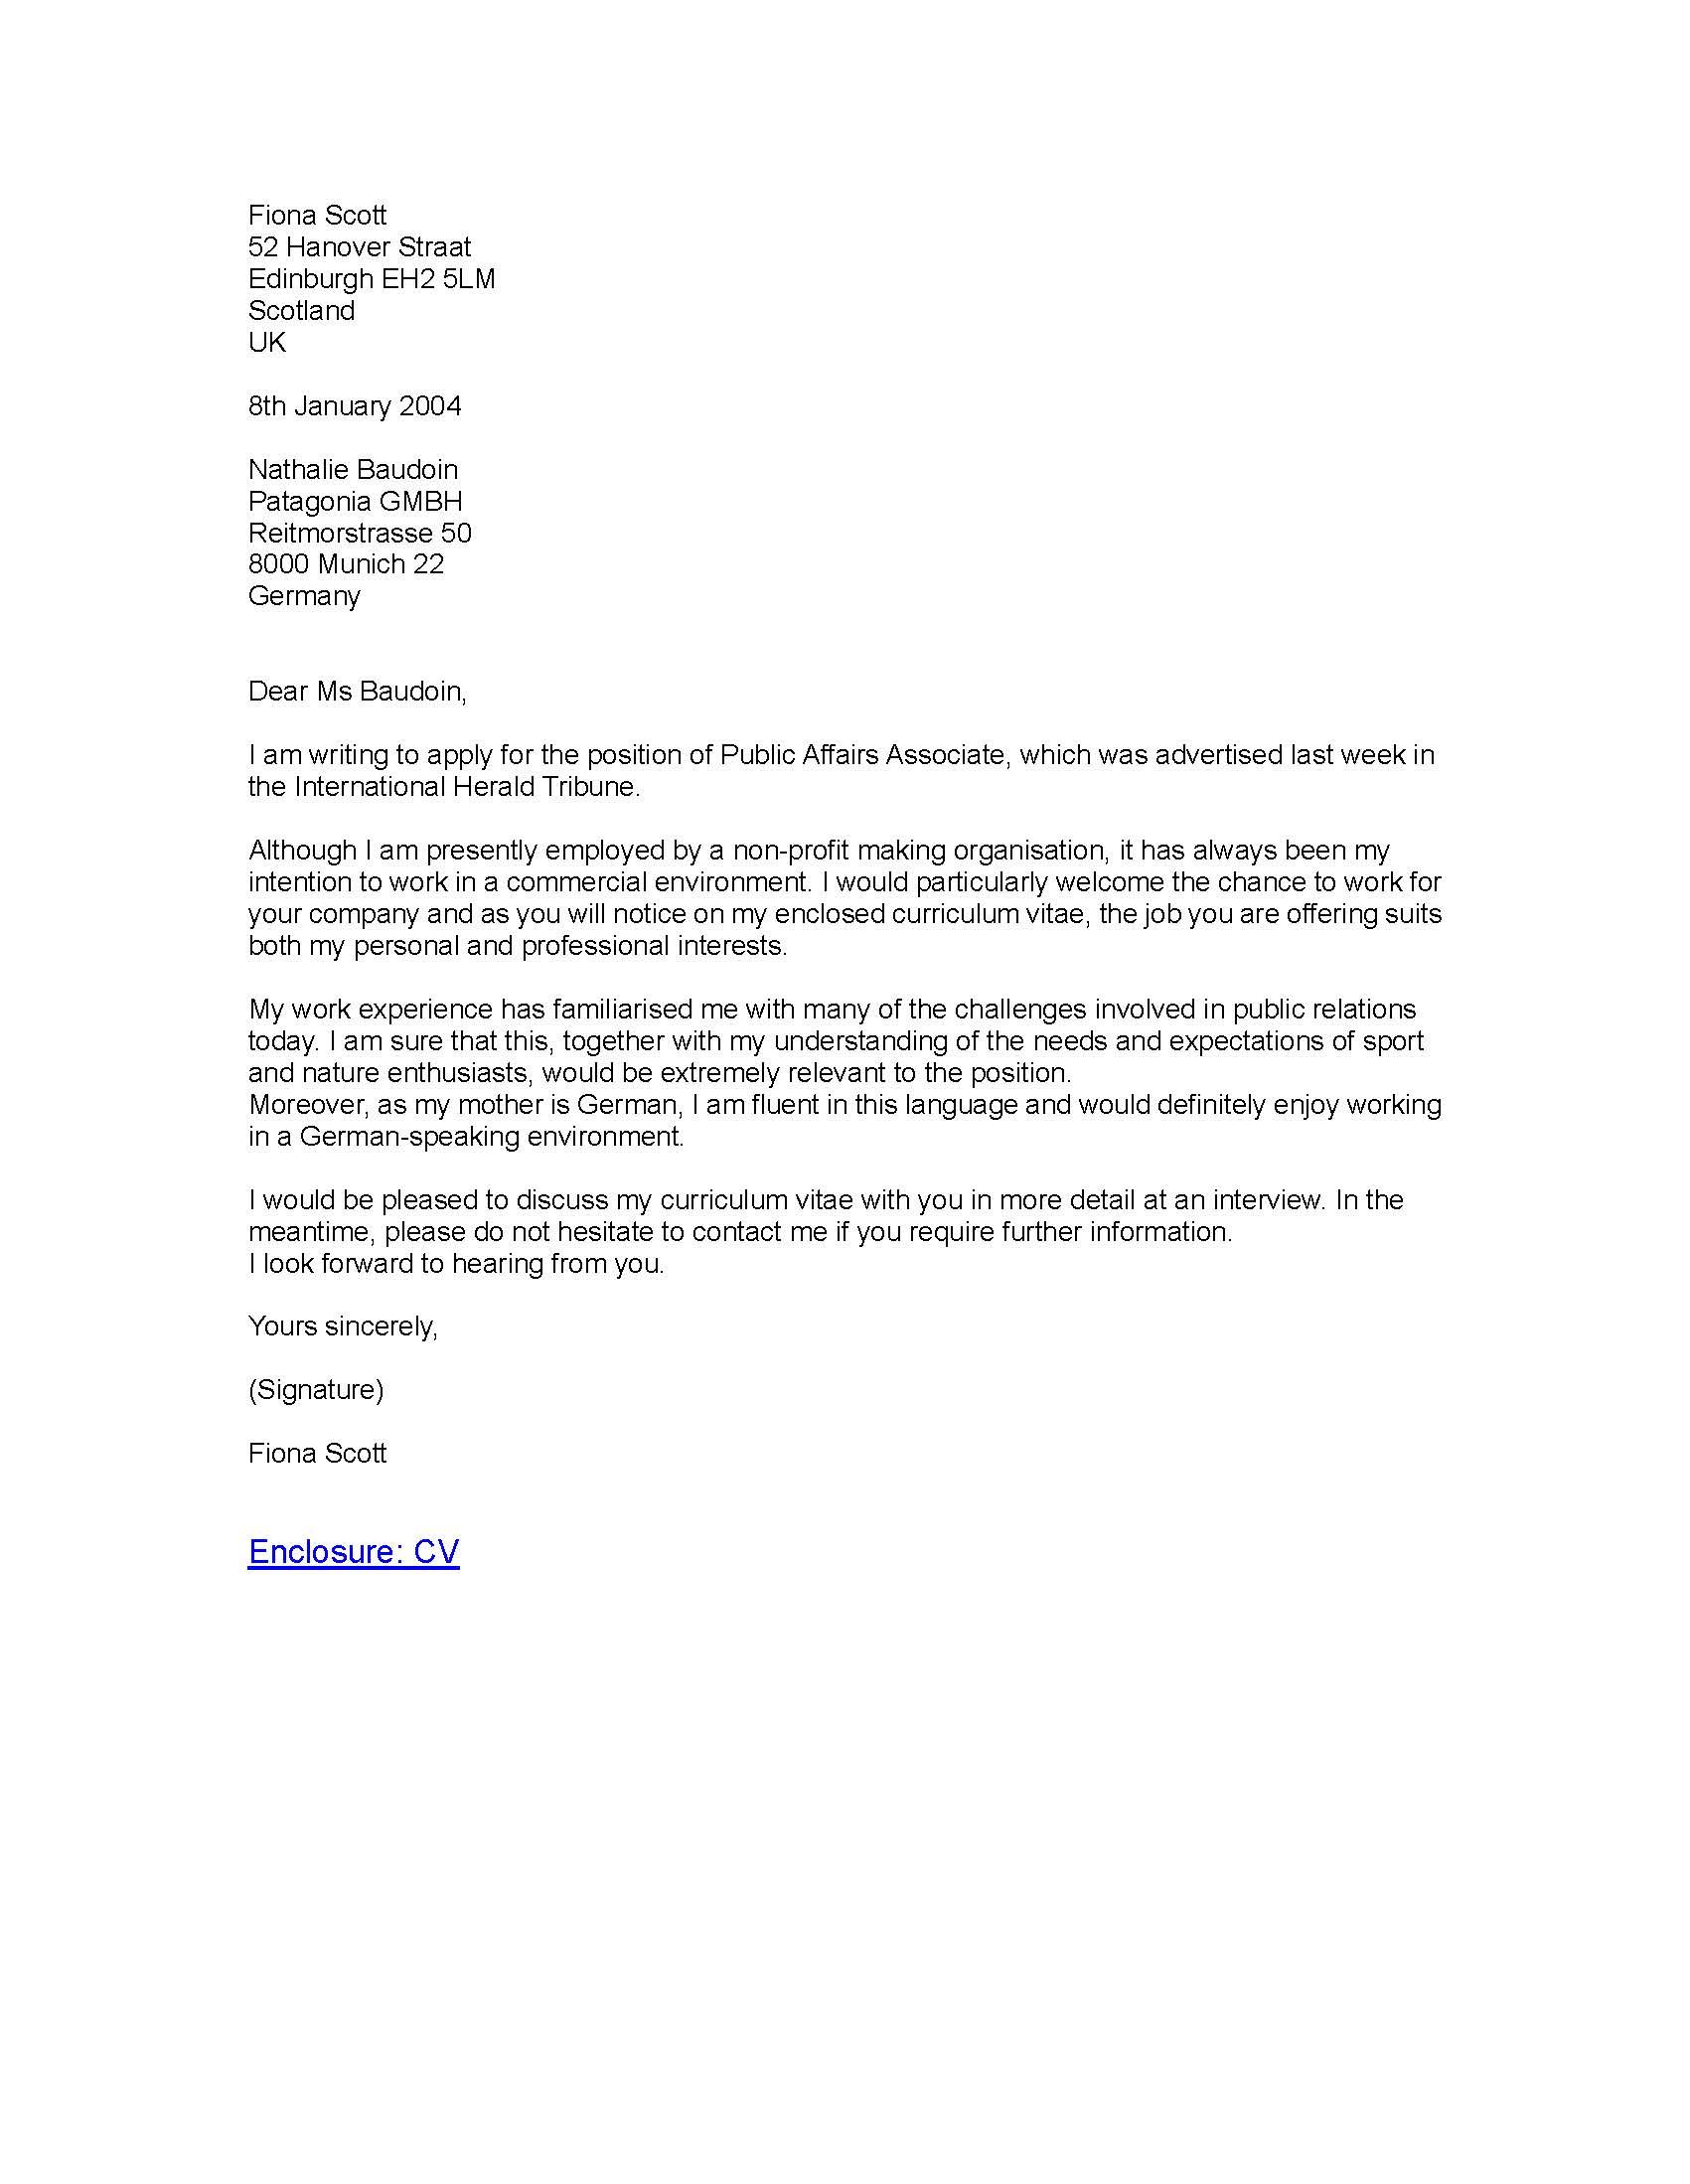 Formal Business Letter Applying For A Job Formal Business Letter Business Letter Format Business Letter Template